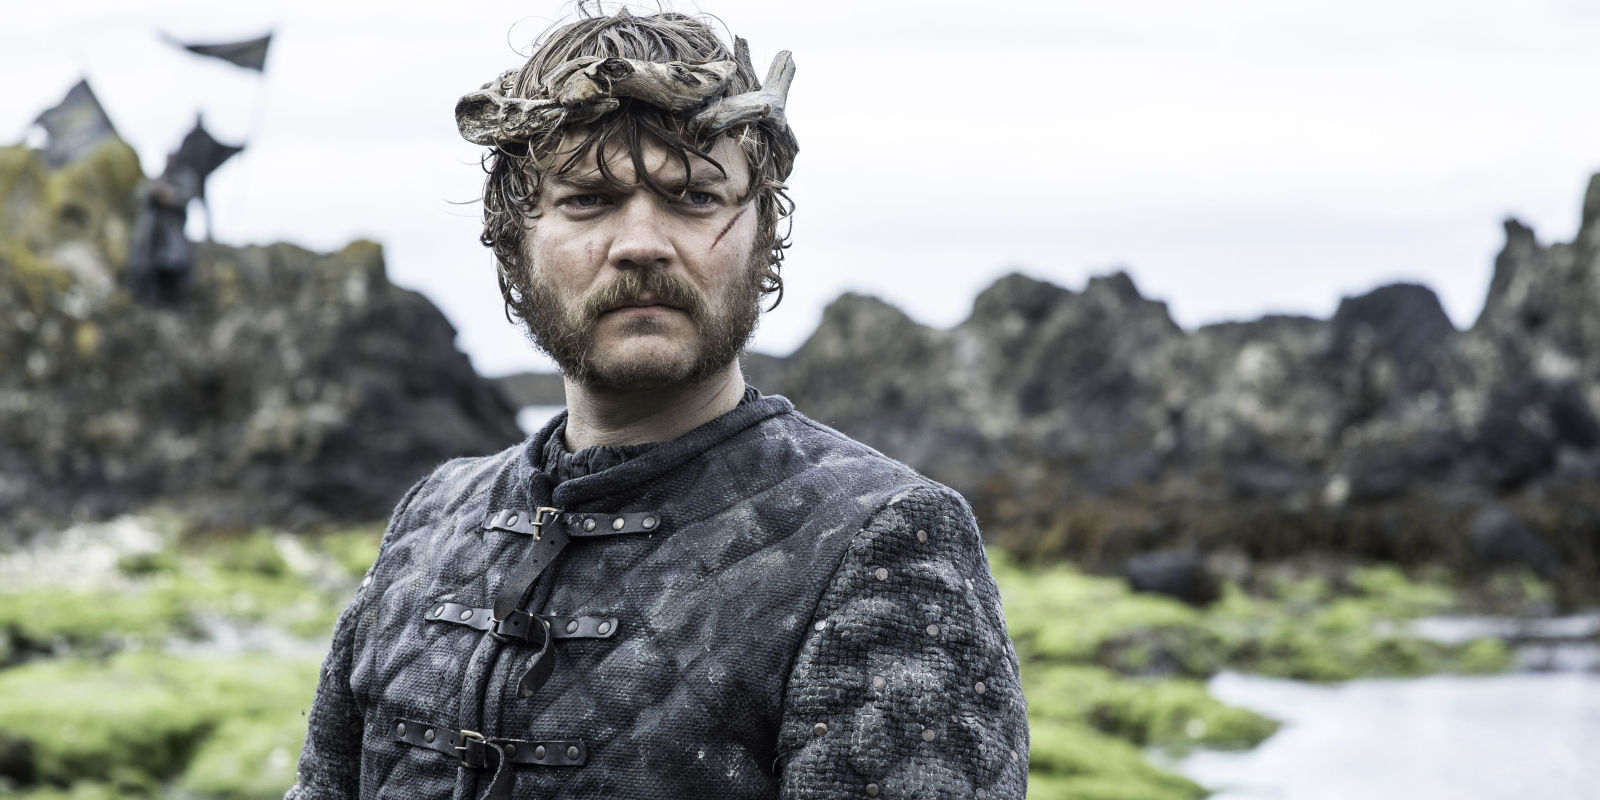 Euron Greyjoy on Game of Thrones